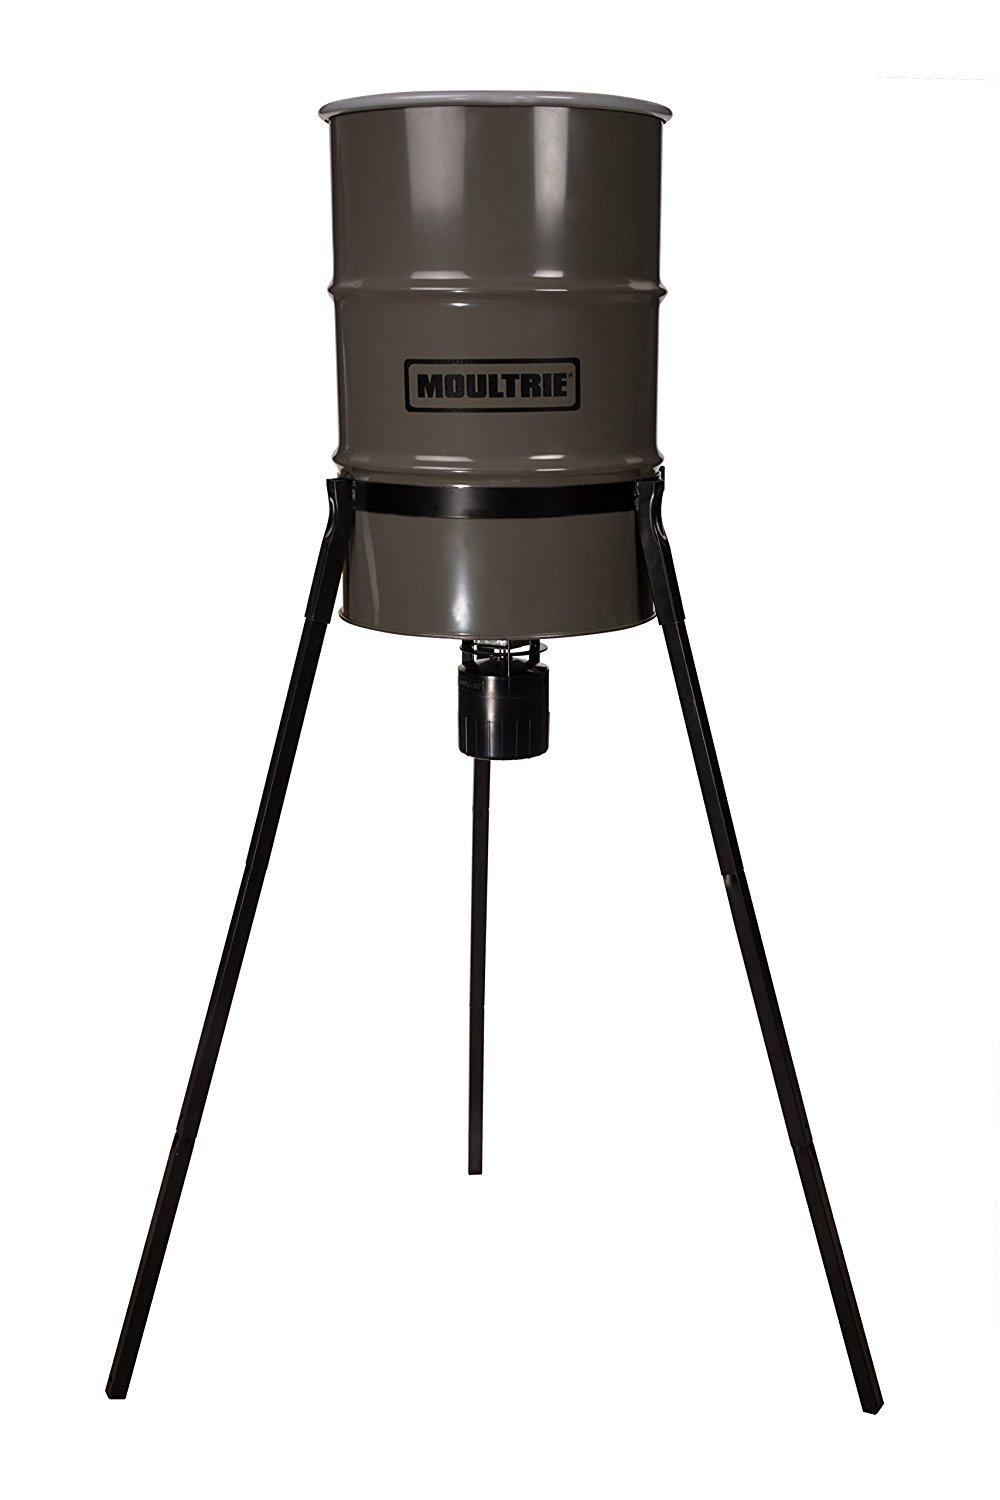 Moultrie 55 Gallon PRO Hunter Tripod